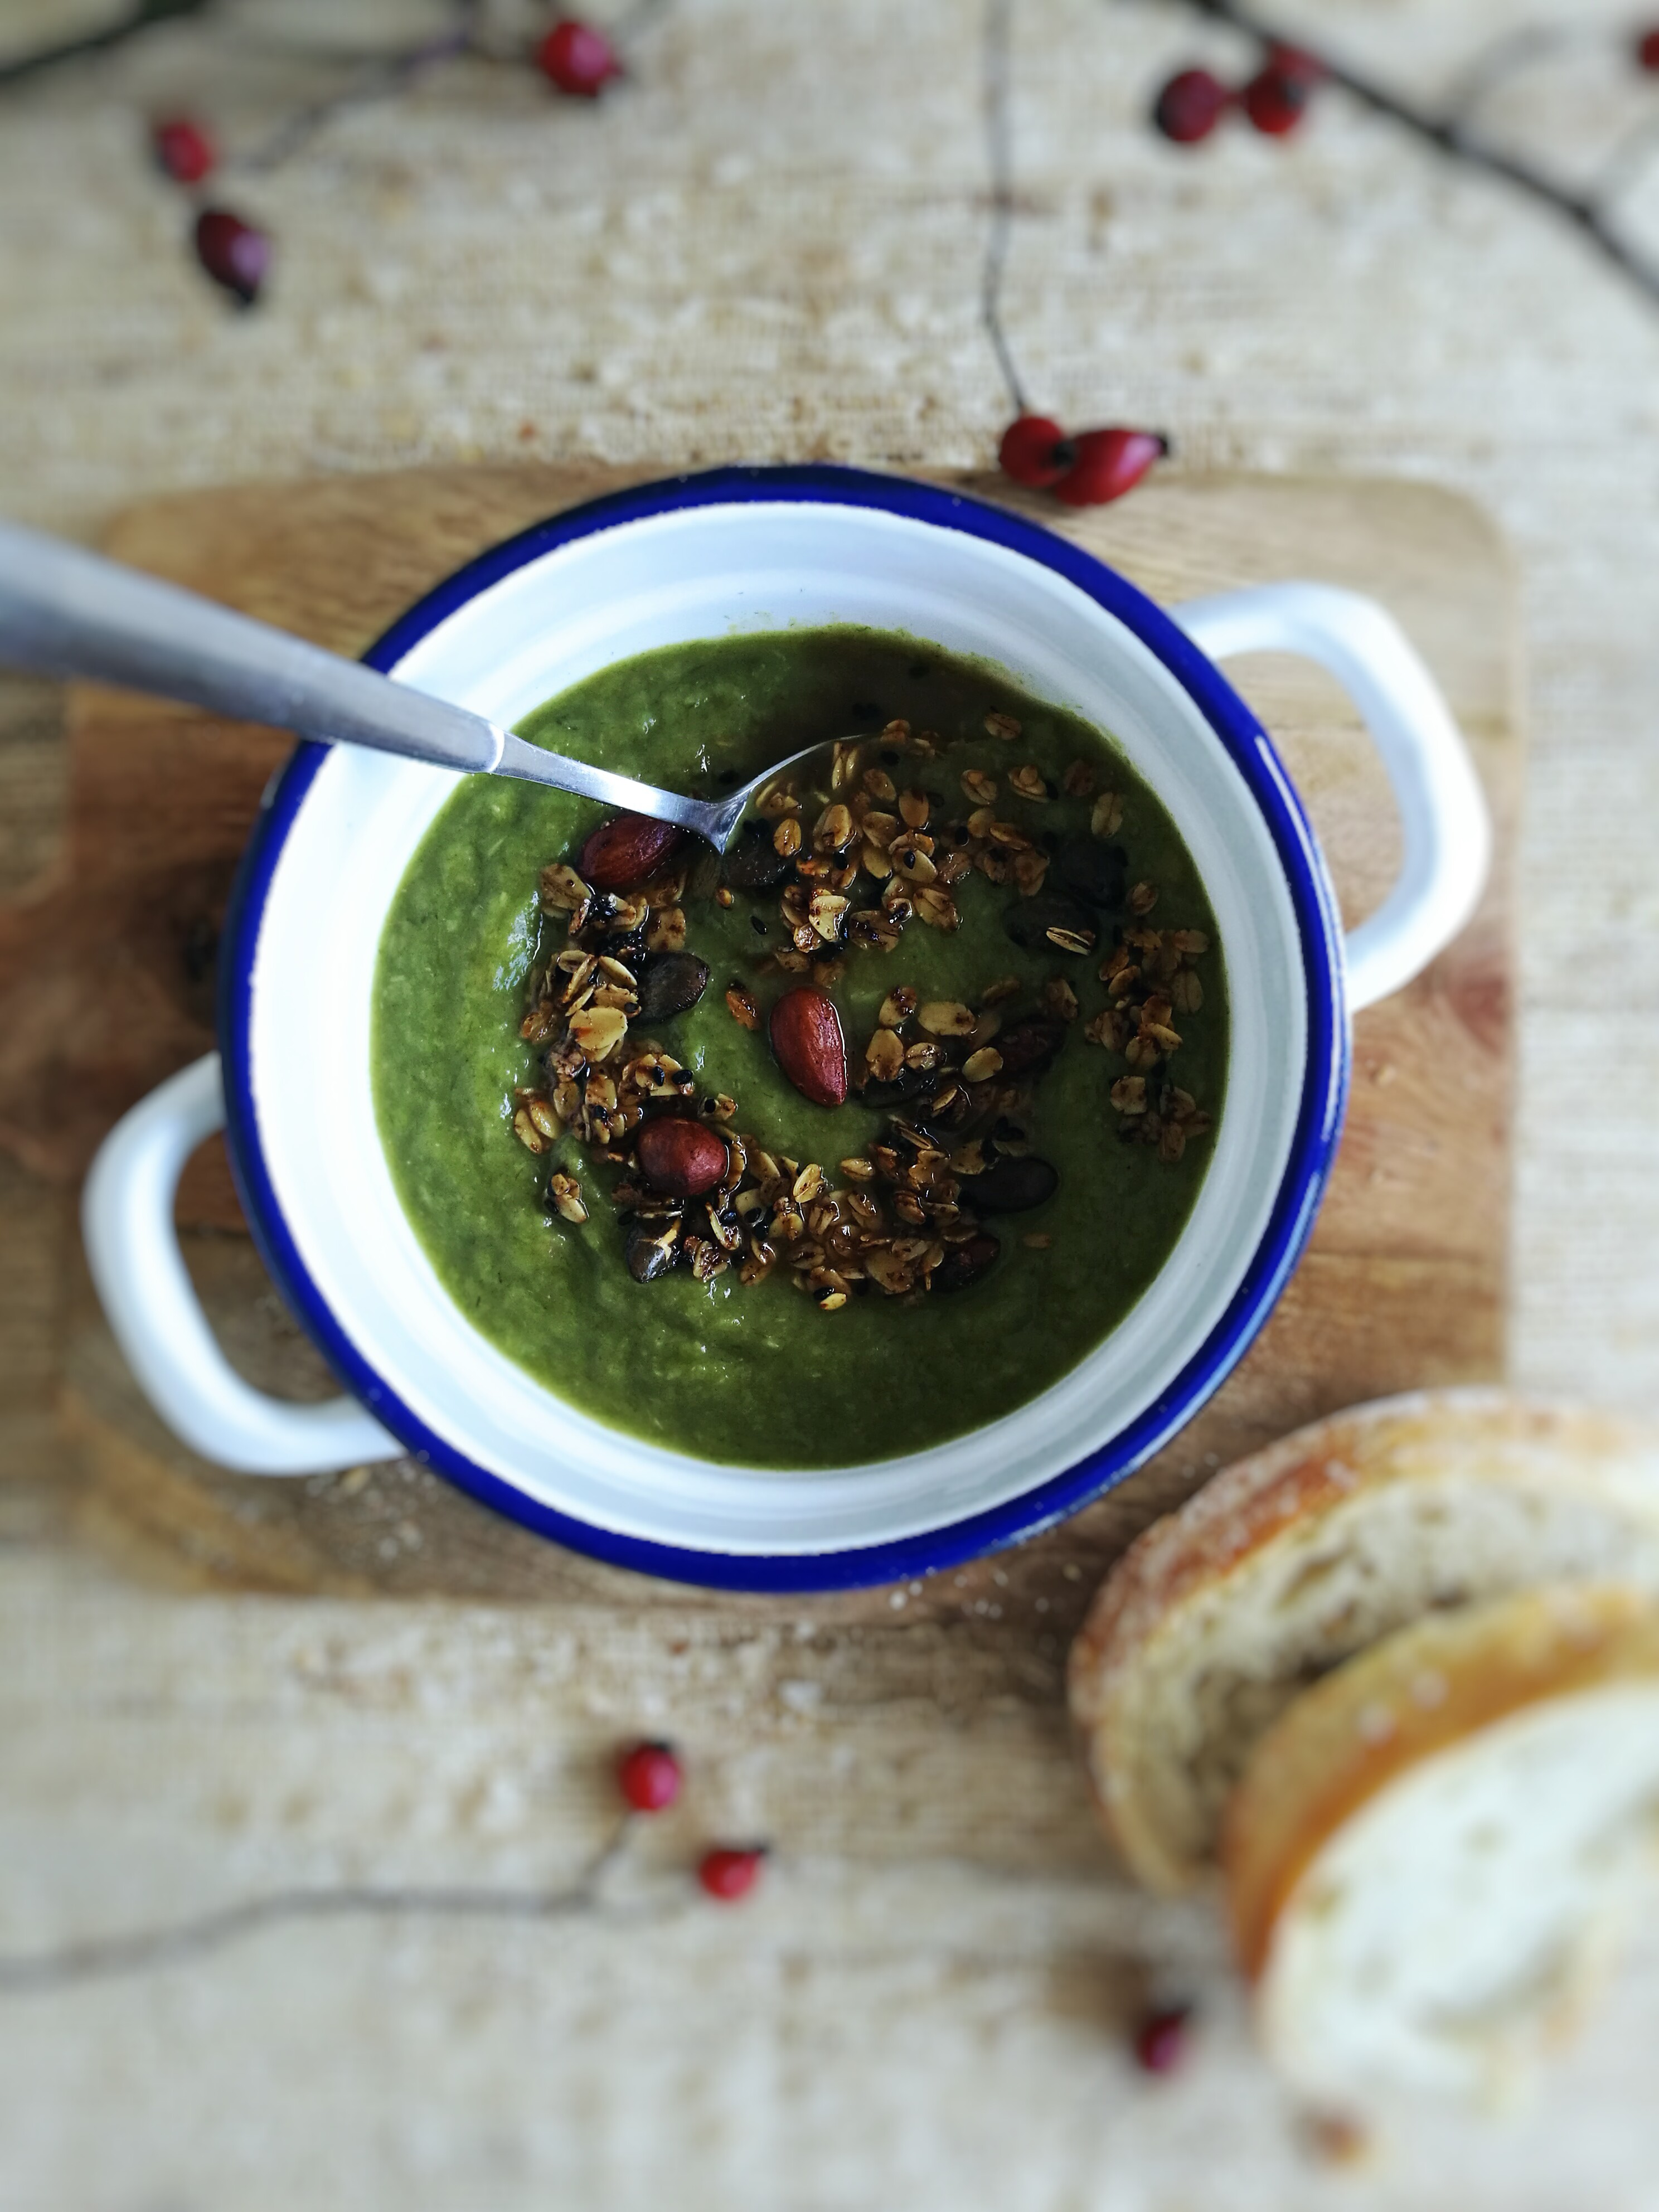 Leek soup served with spicy granola - culinary postcards